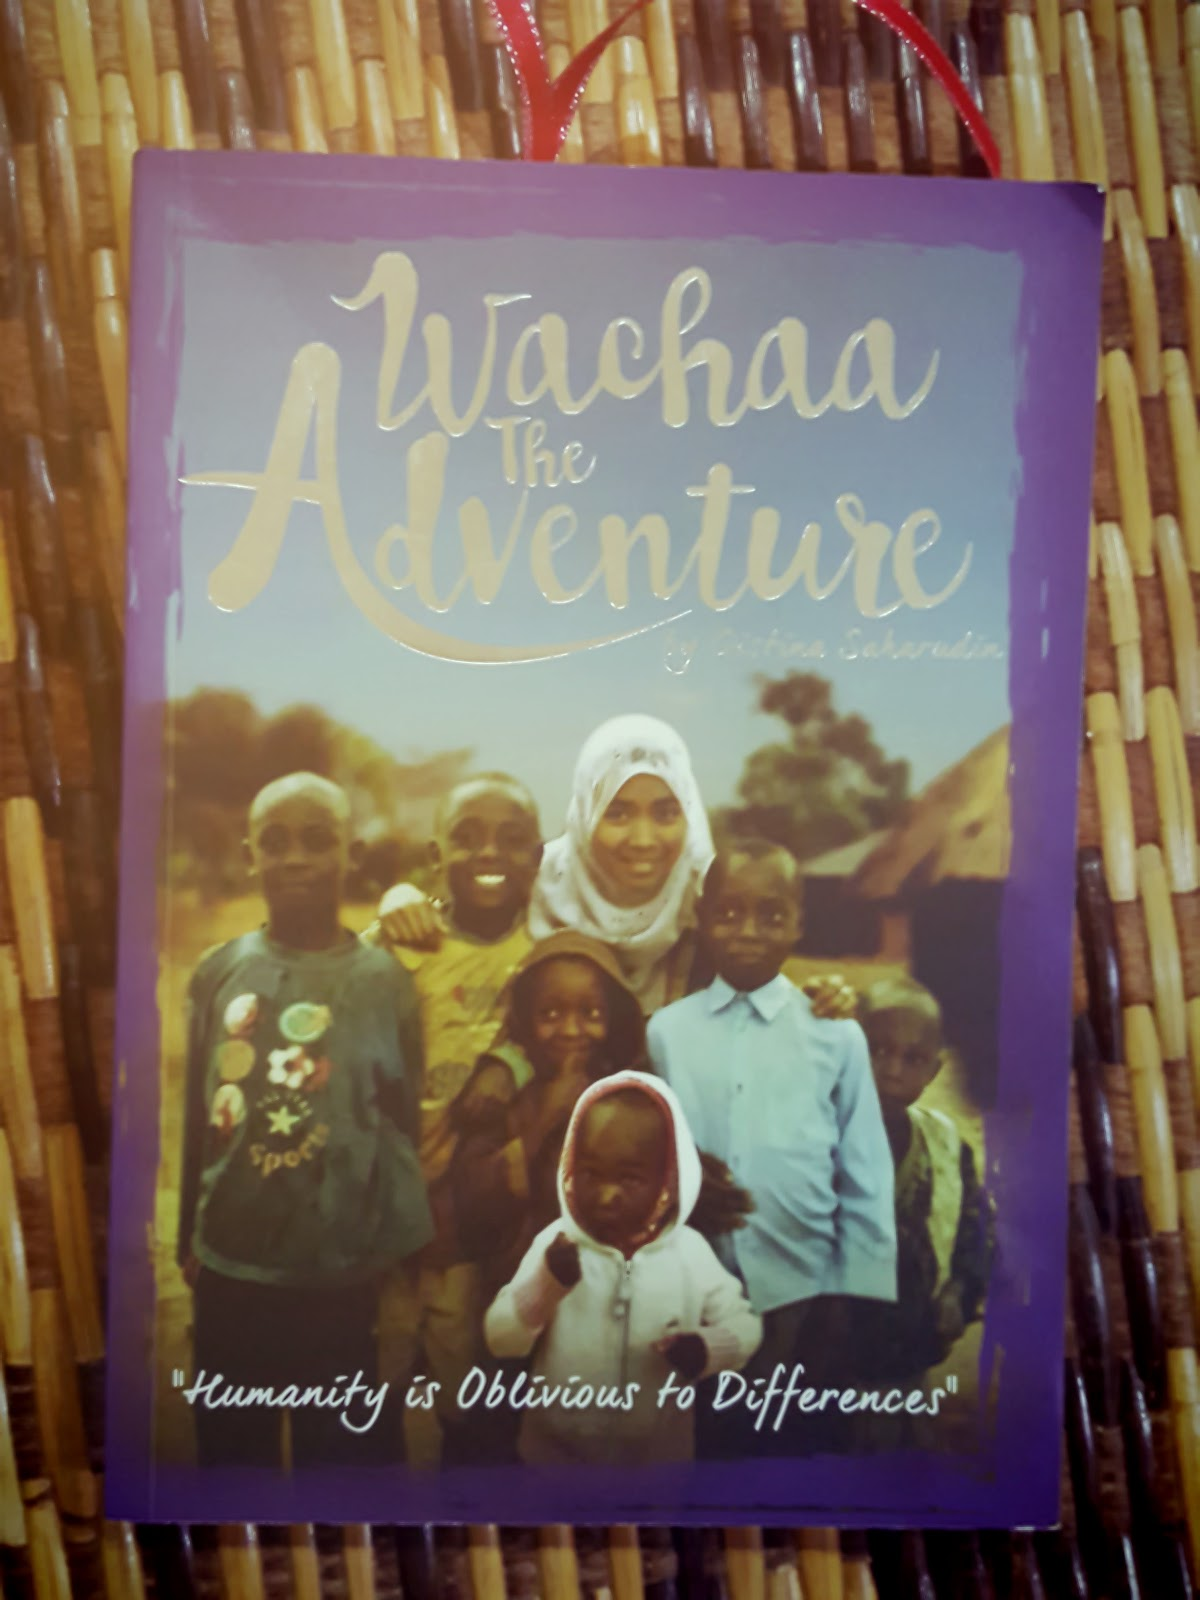 Wachaa The Adventure (Qistina Saharudin)